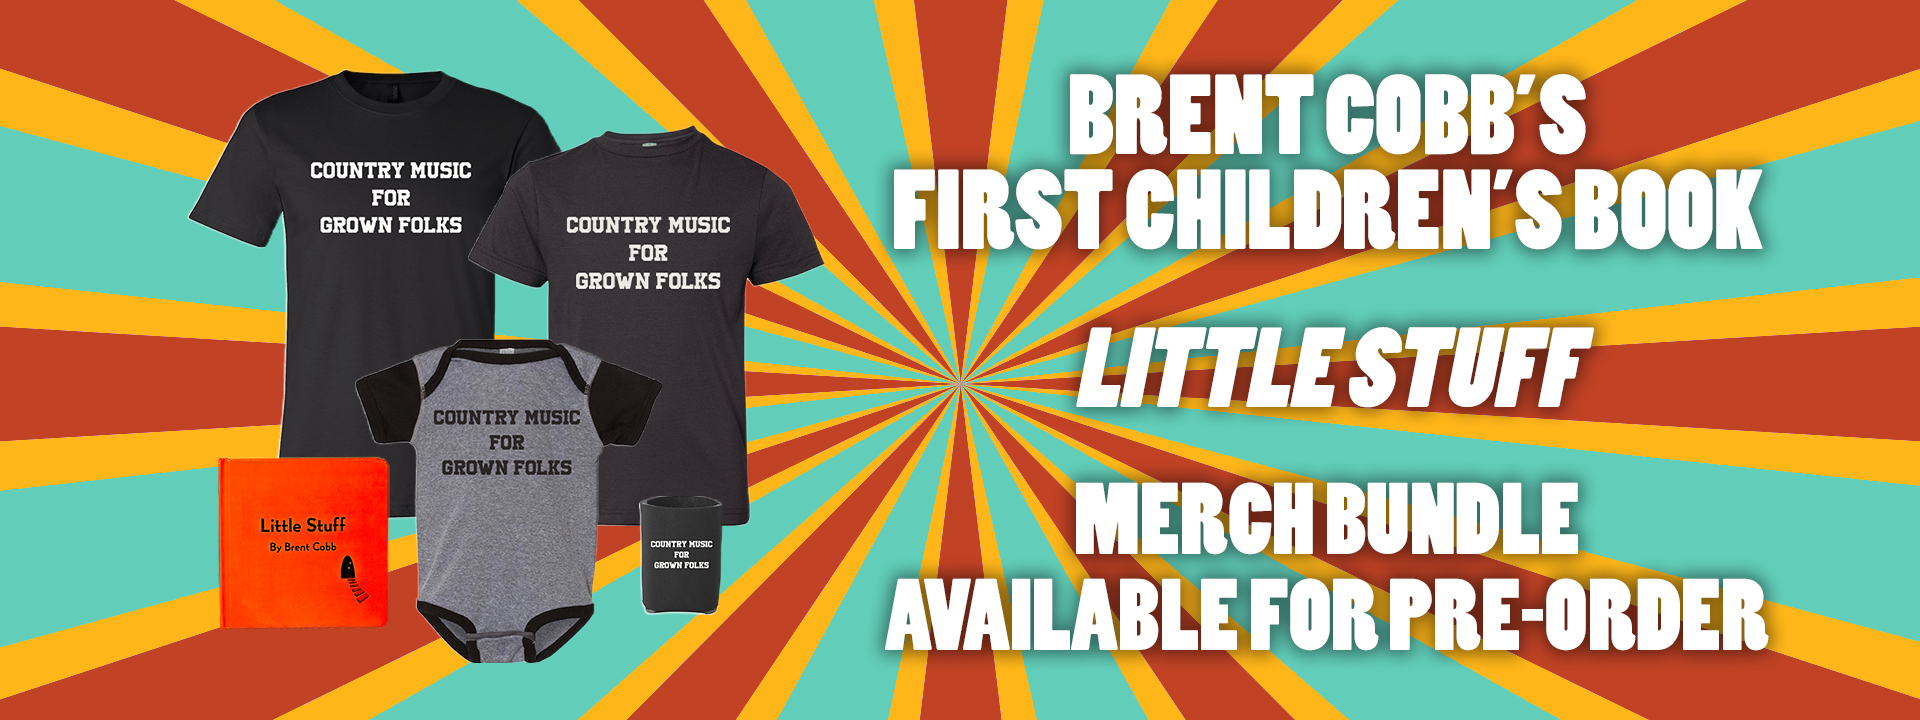 Brent Cobb Little Stuff New Items Children's Book and Clothes